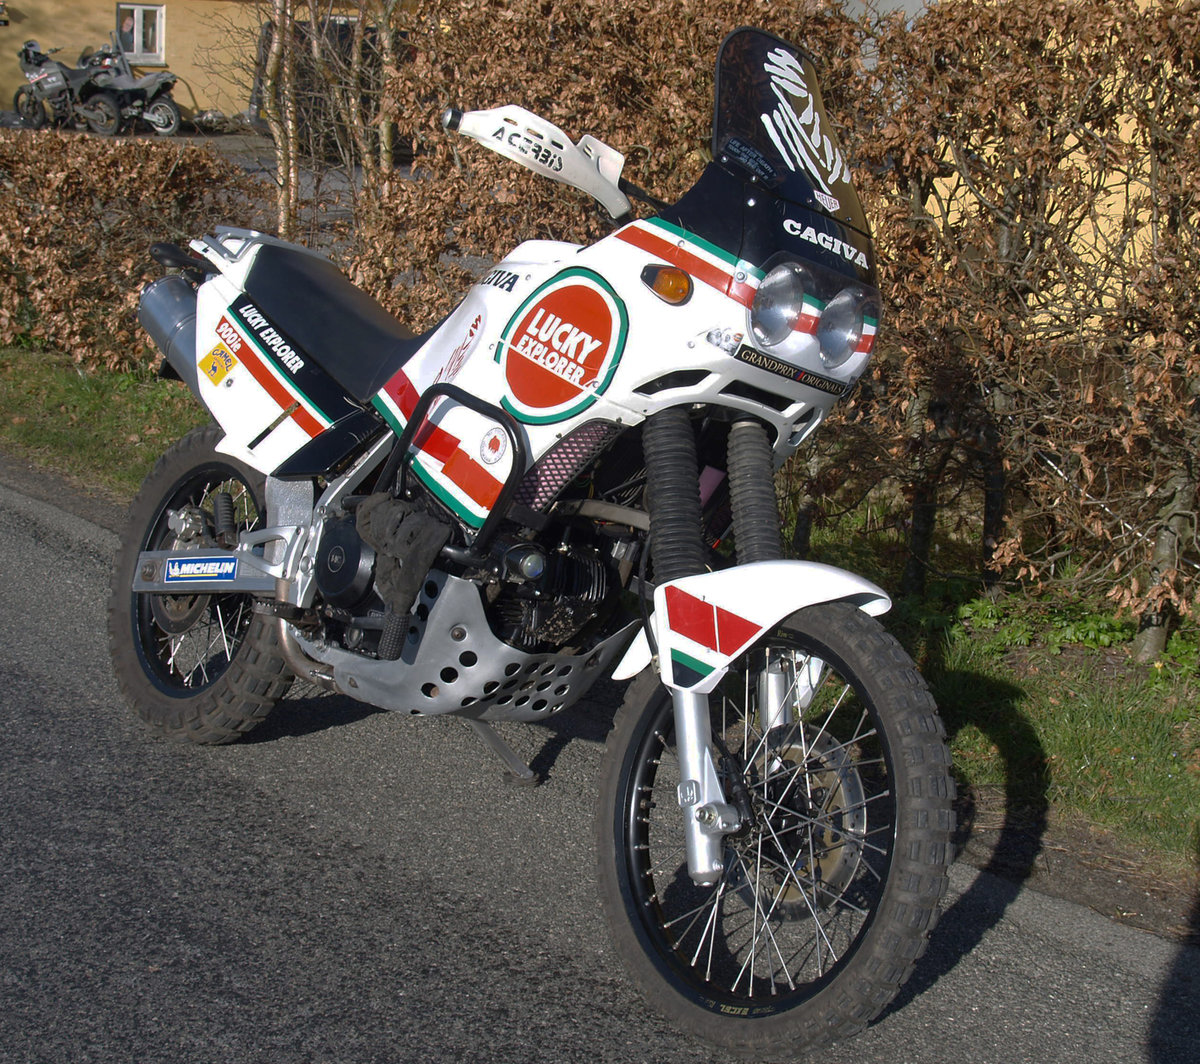 1990 CAGIVA ELEFANT LUCKY EXPLORER 900ie For Sale (picture 1 of 6)